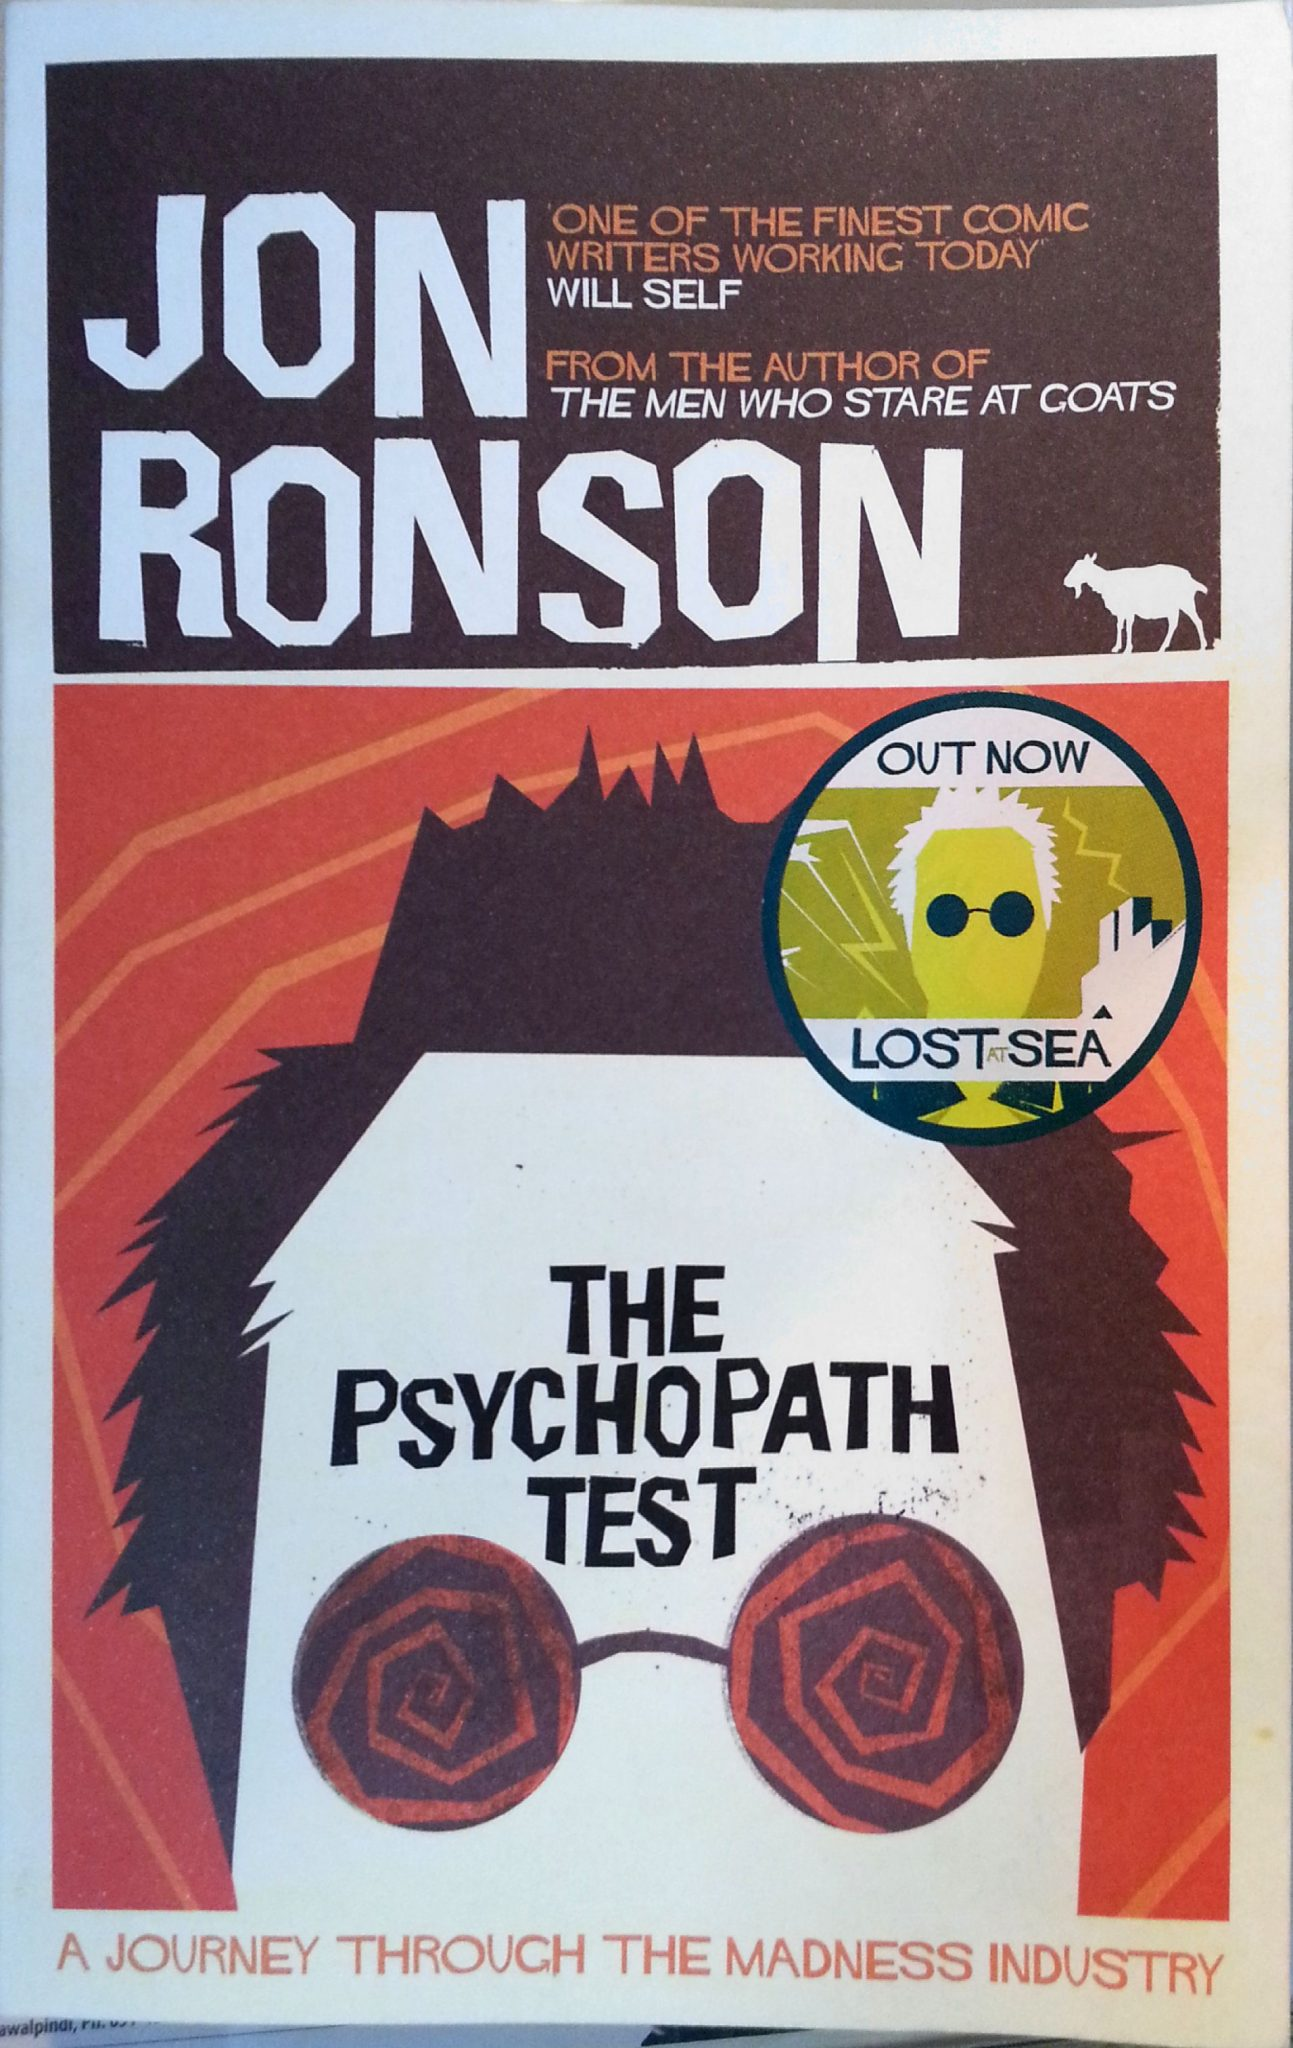 The Psychopath Test – A Journey through the Madness Industry